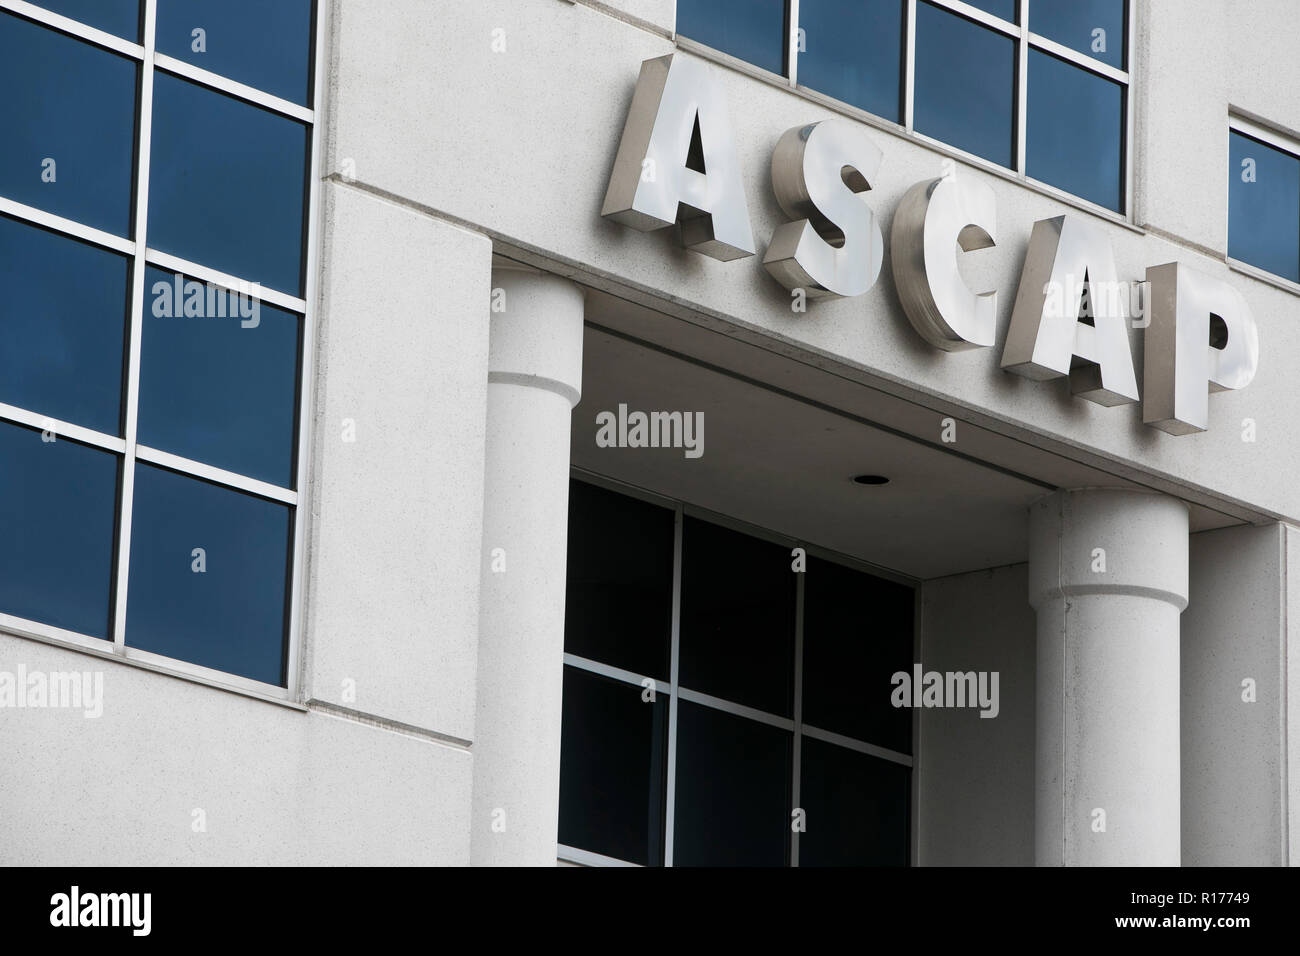 A logo sign outside of a facility occupied by The American Society of Composers, Authors, and Publishers (ASCAP) in Nashville, Tennessee, on October 9 - Stock Image